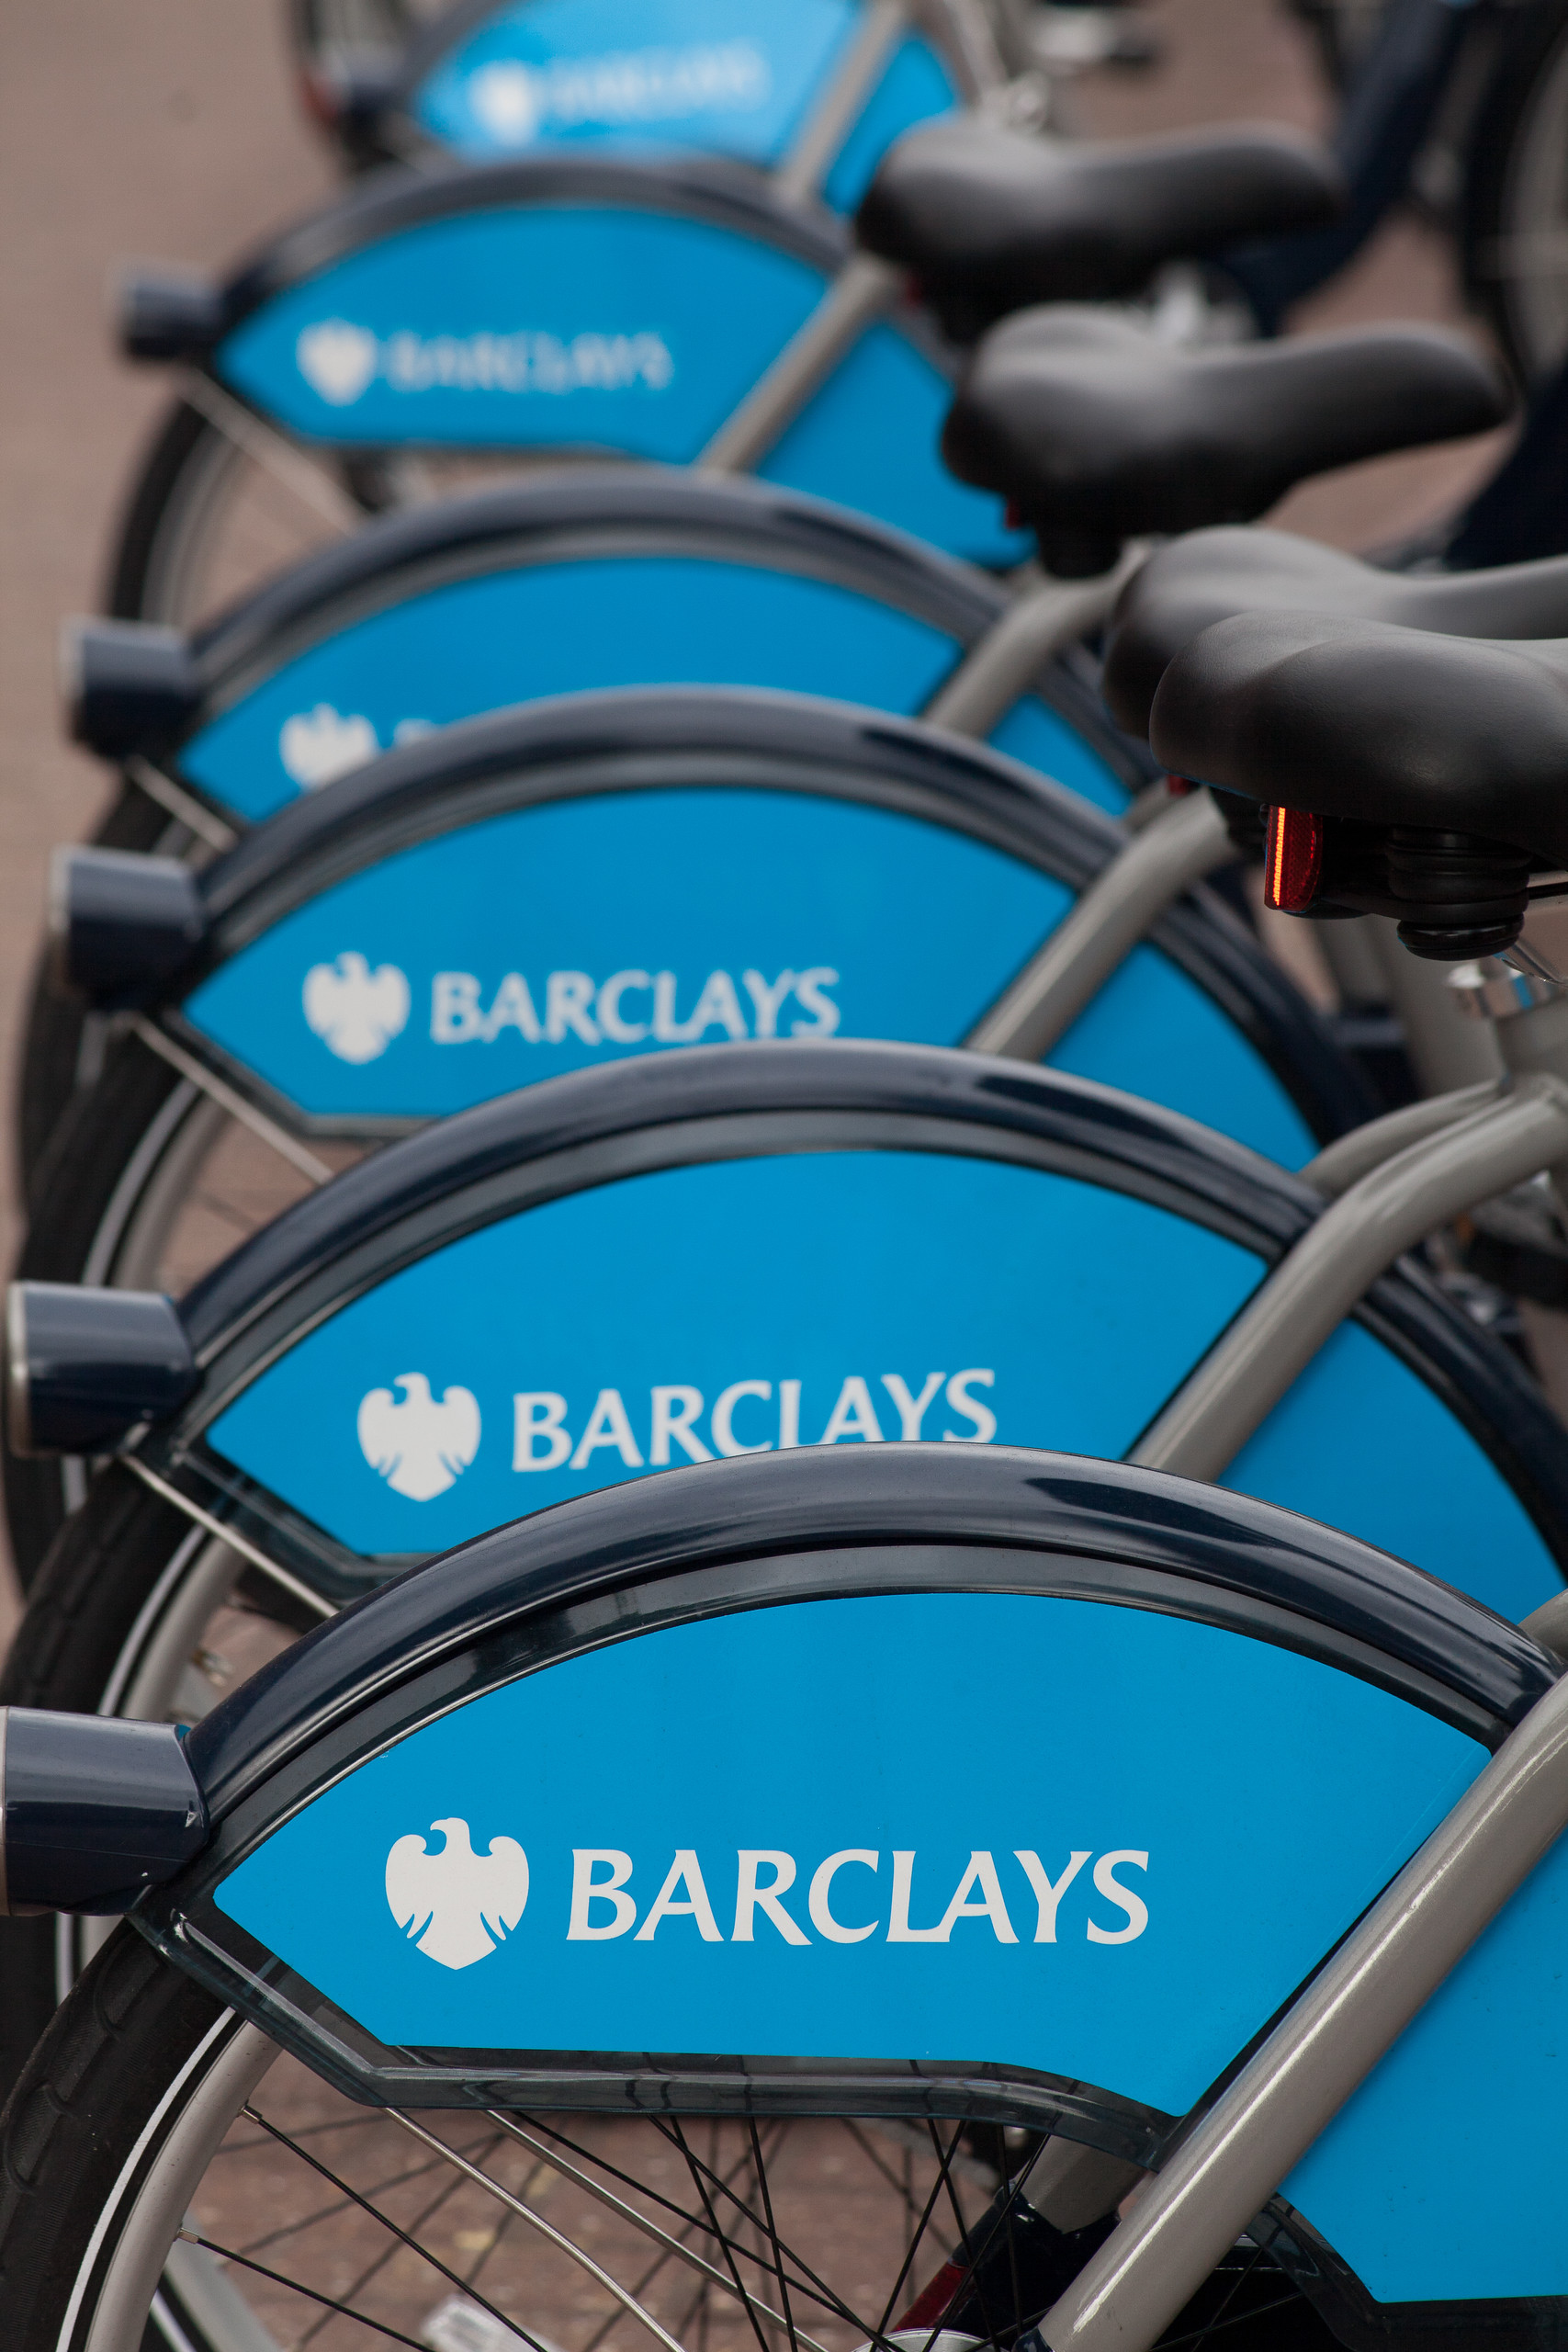 Barclays cycle hire stations are dotted all around Central London, England